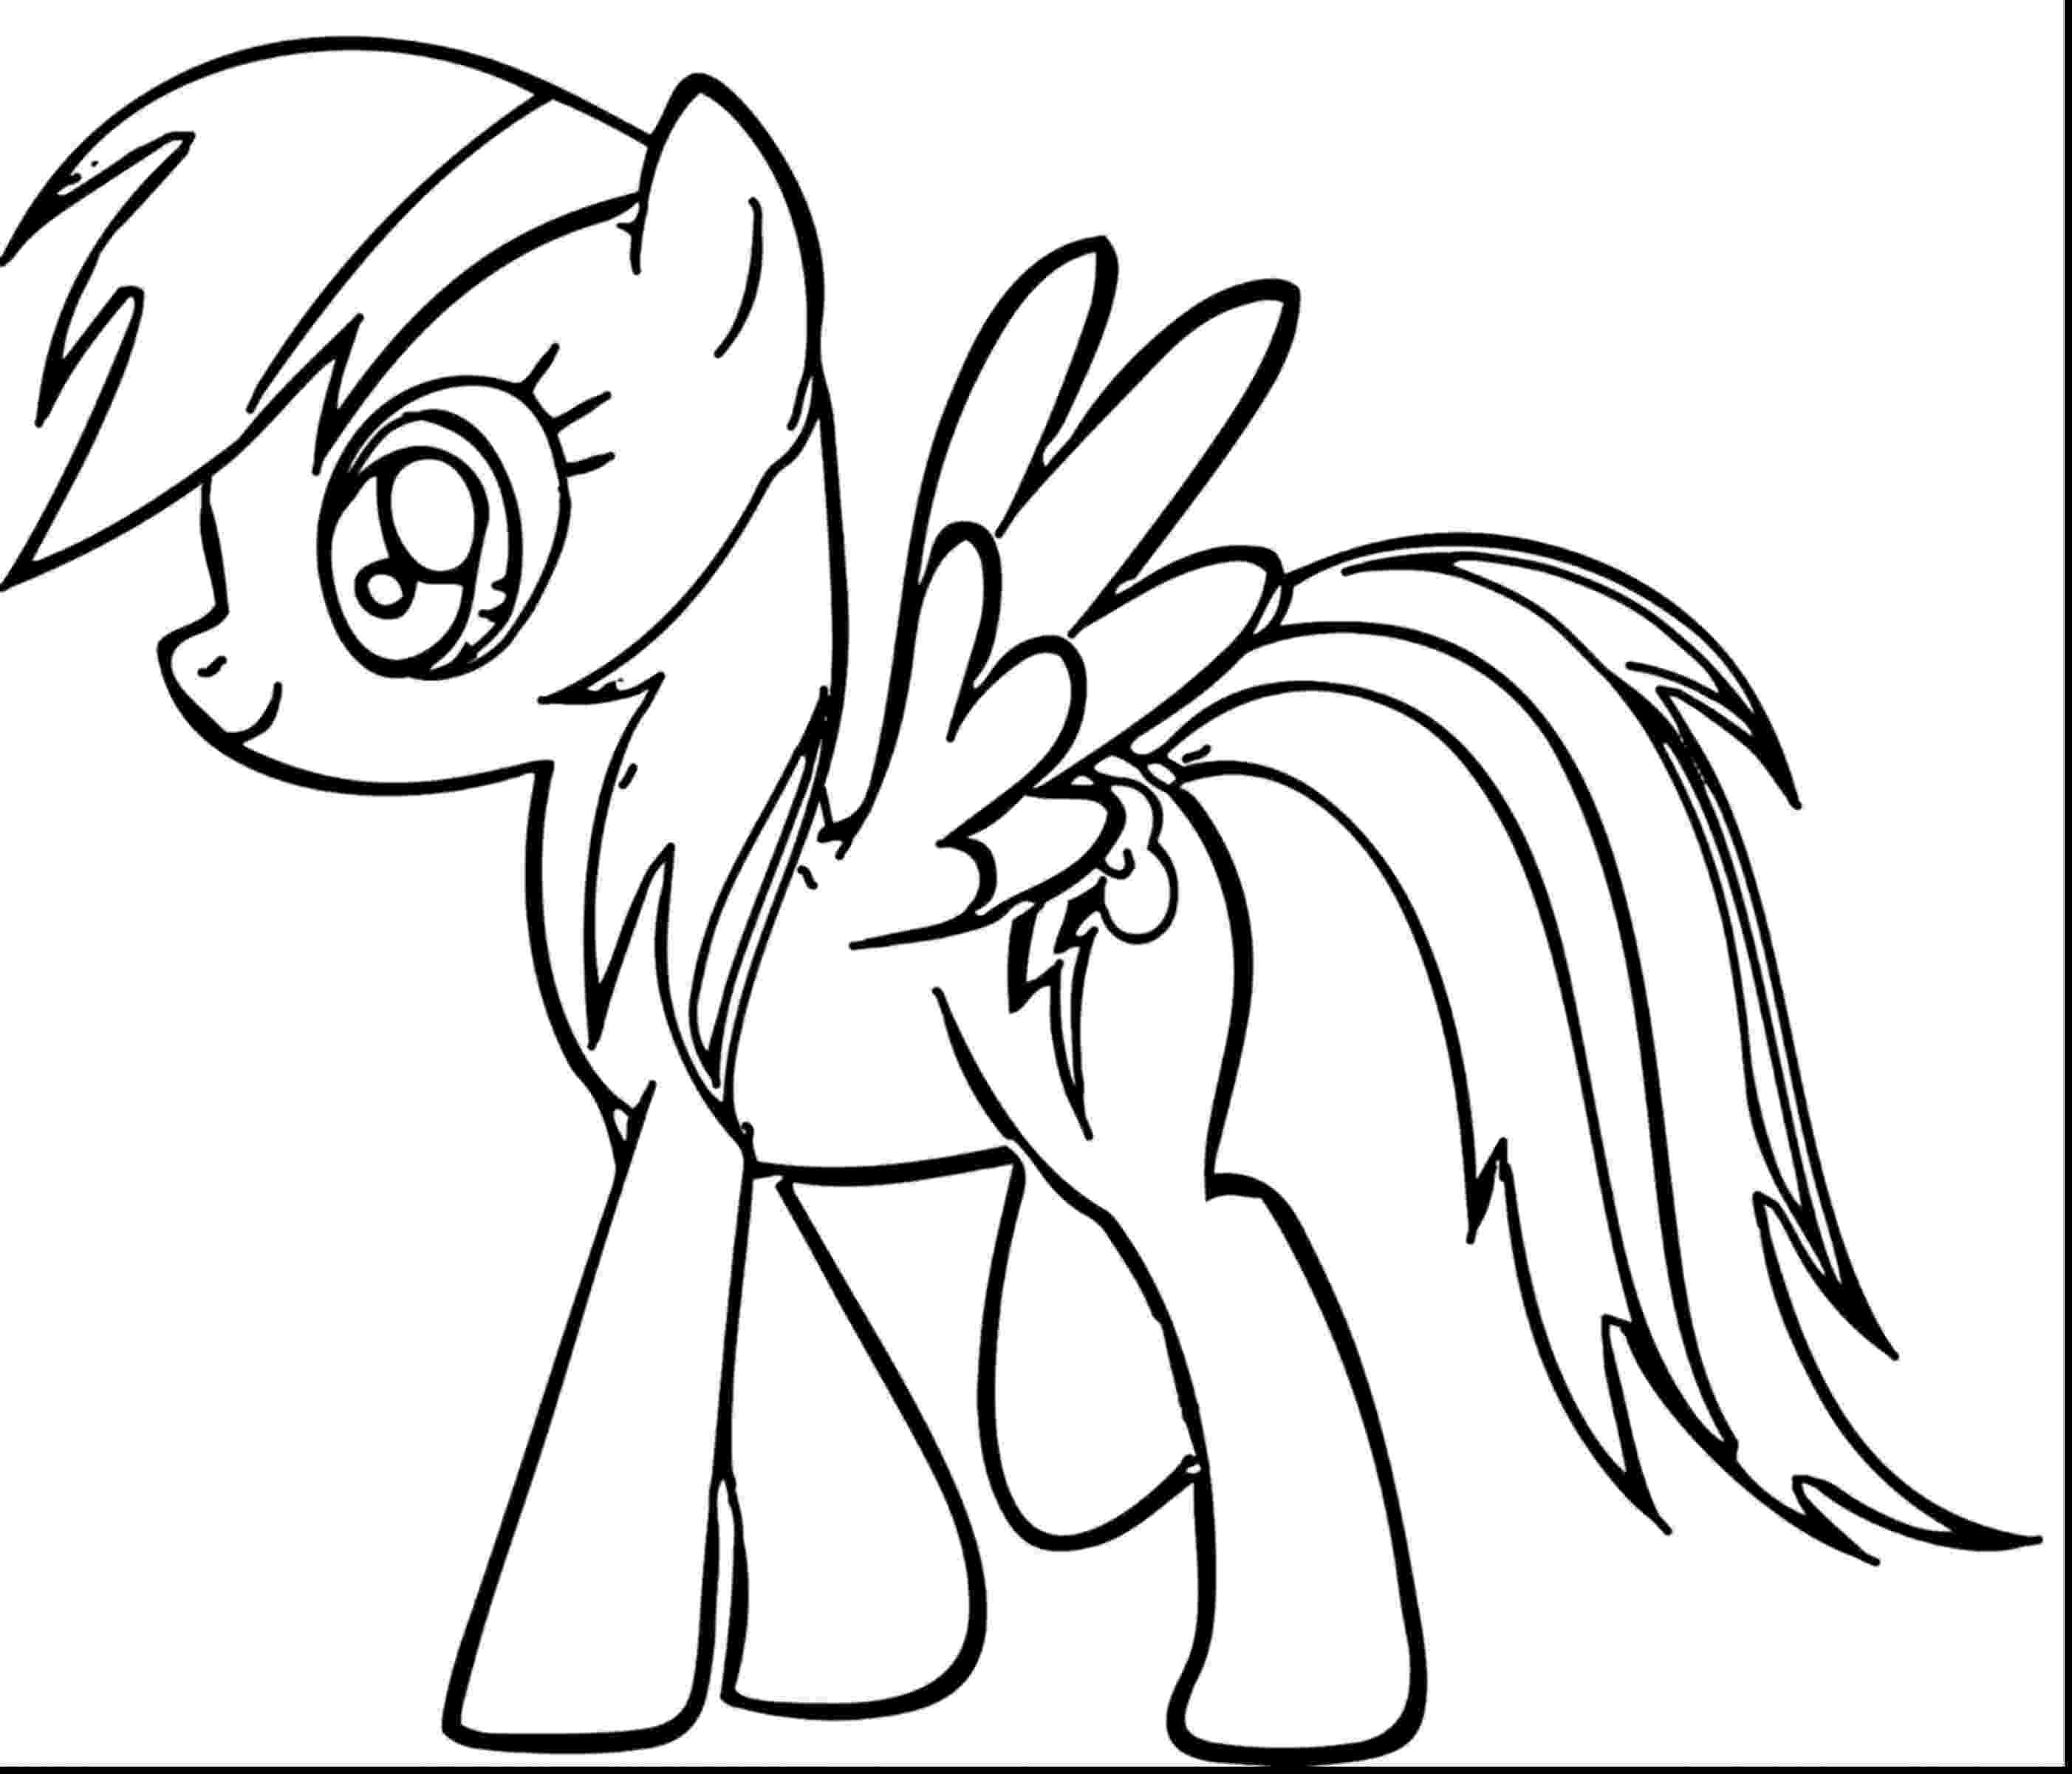 coloring pages rainbow dash my little pony rainbow dash coloring pages free download pages dash rainbow coloring